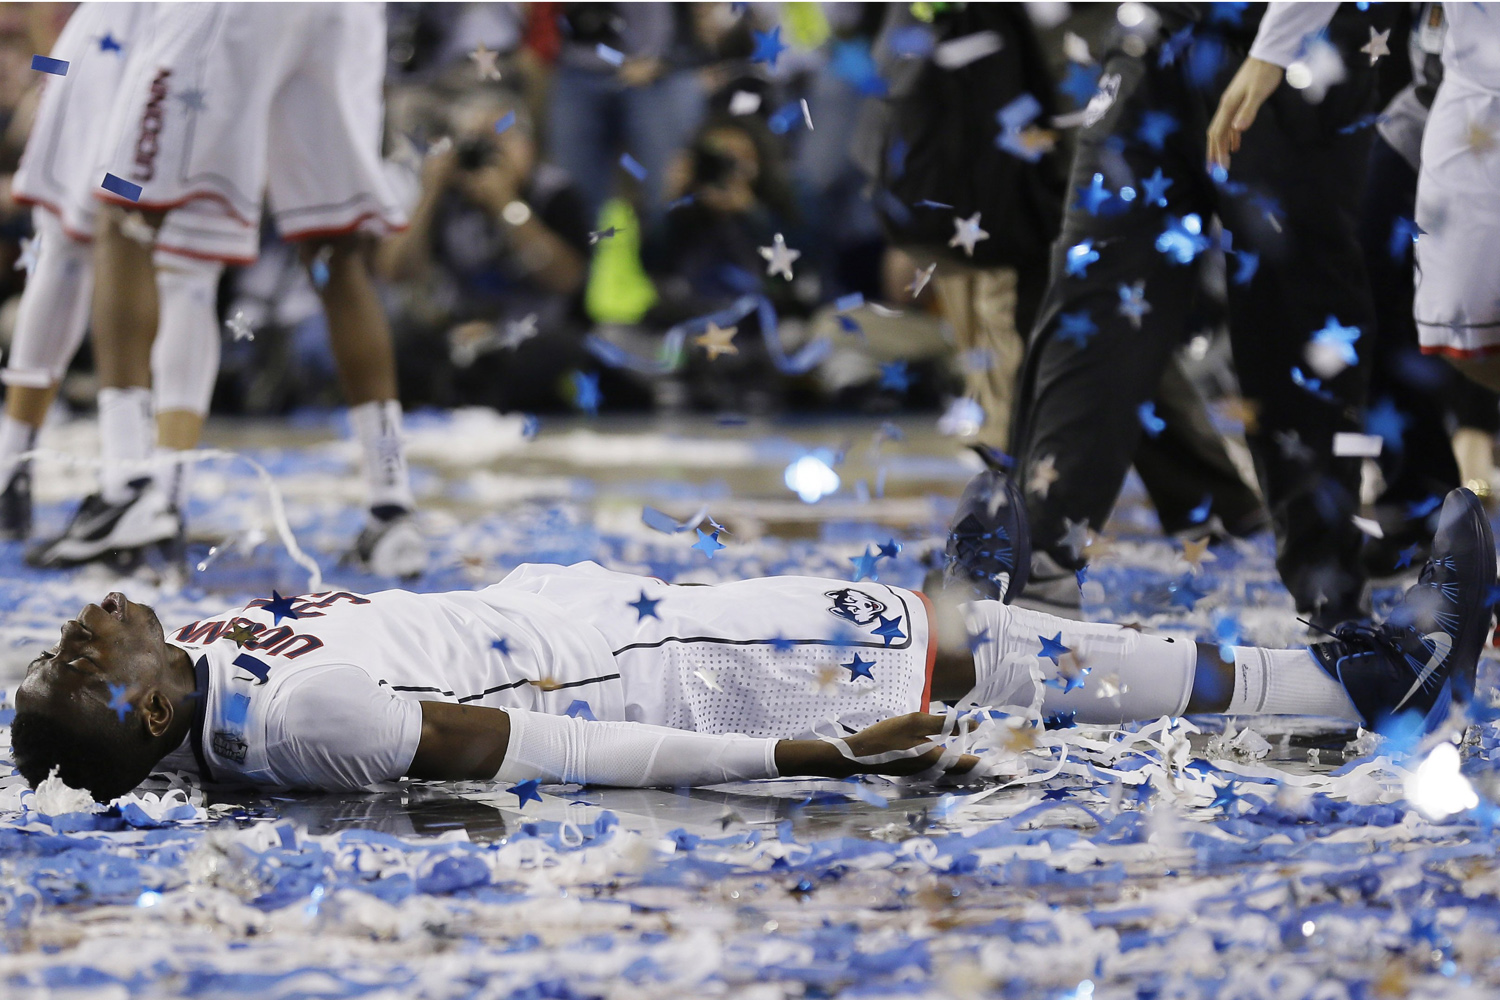 Apr. 7, 2014. Connecticut center Amida Brimah celebrates after winning the NCAA Final Four tournament college basketball championship game 60-54, against Kentucky.